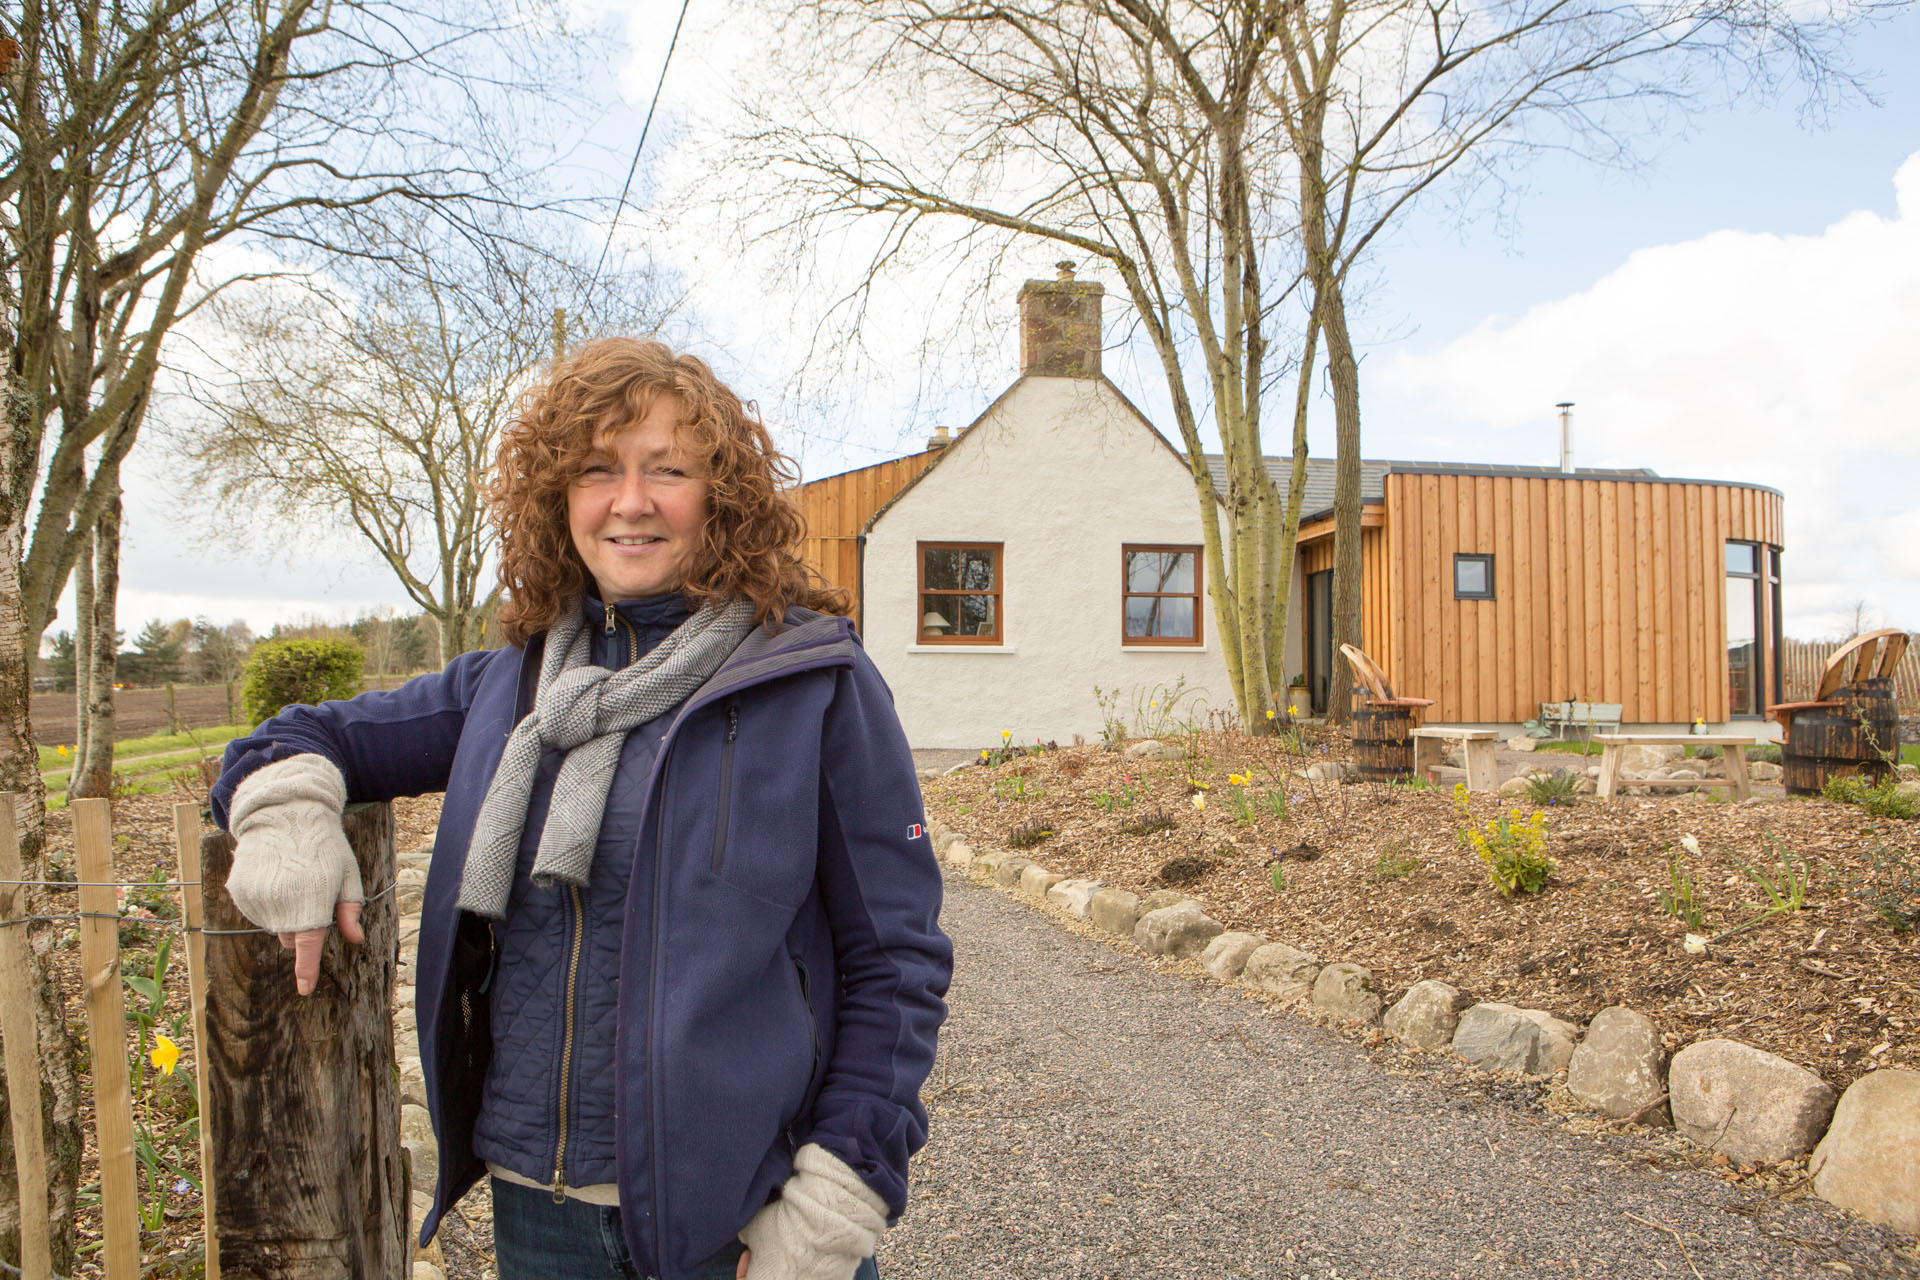 Caroline renewables user outside her home